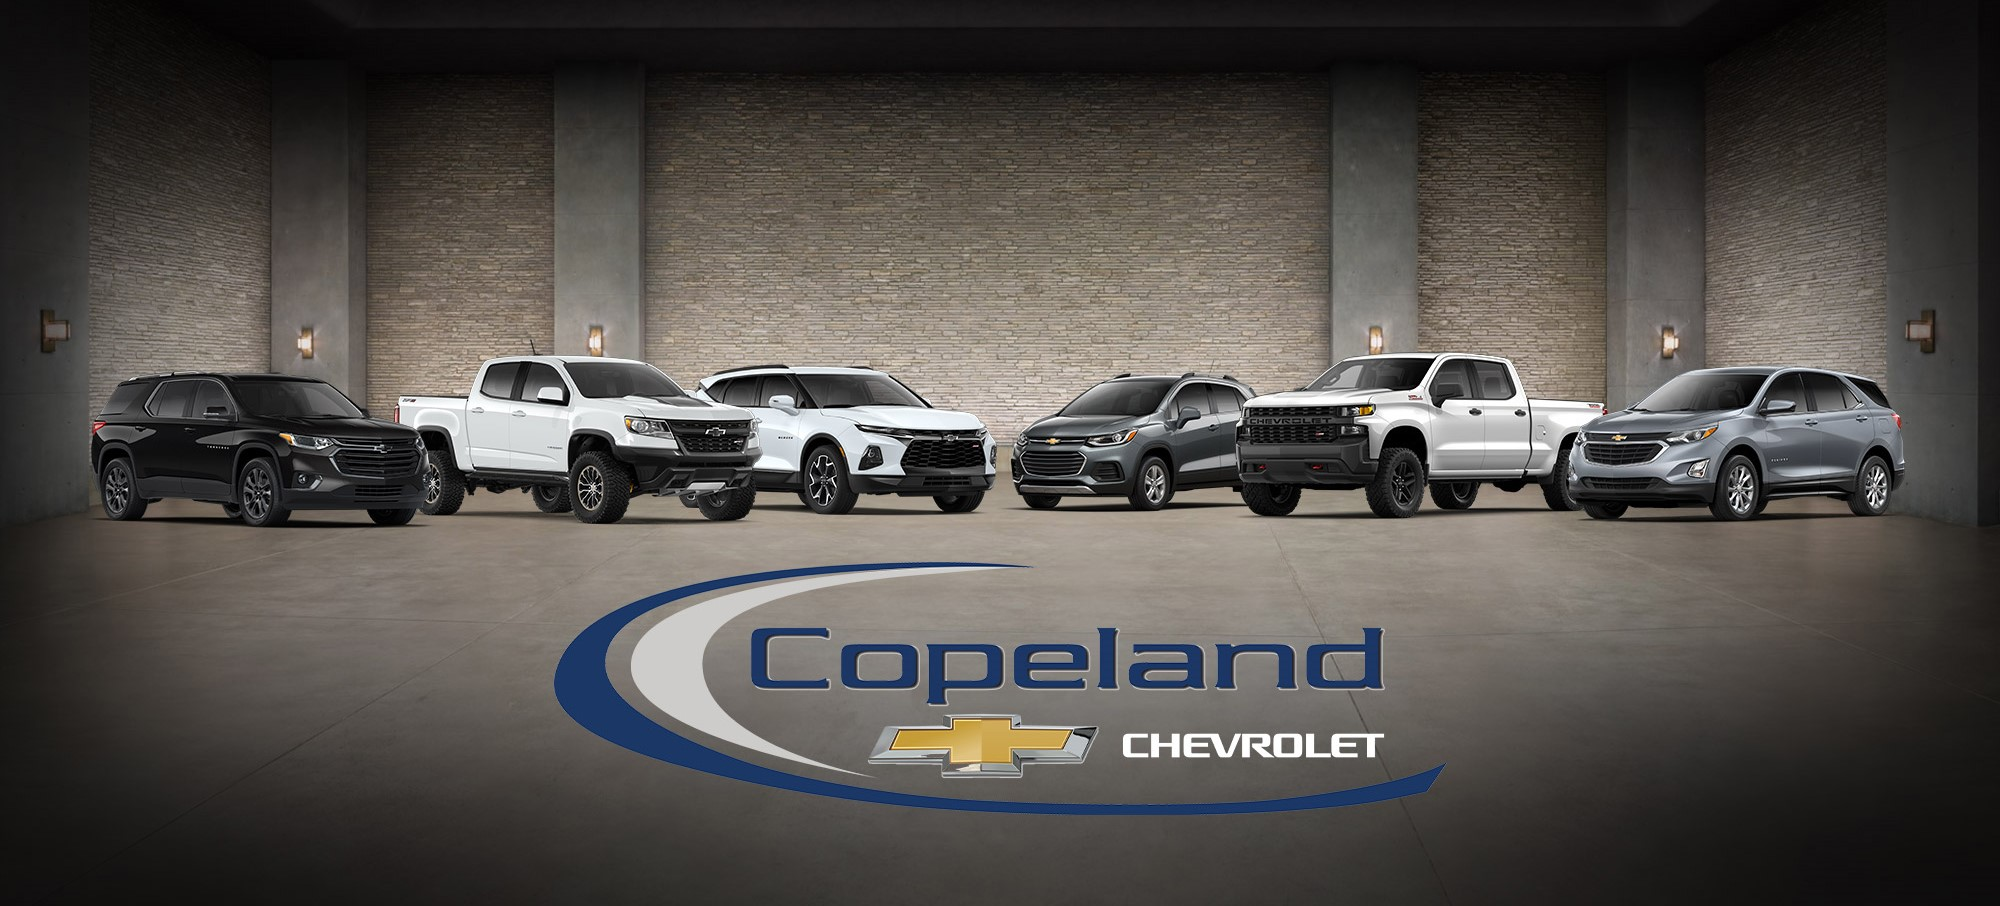 Copeland Chevrolet Blog